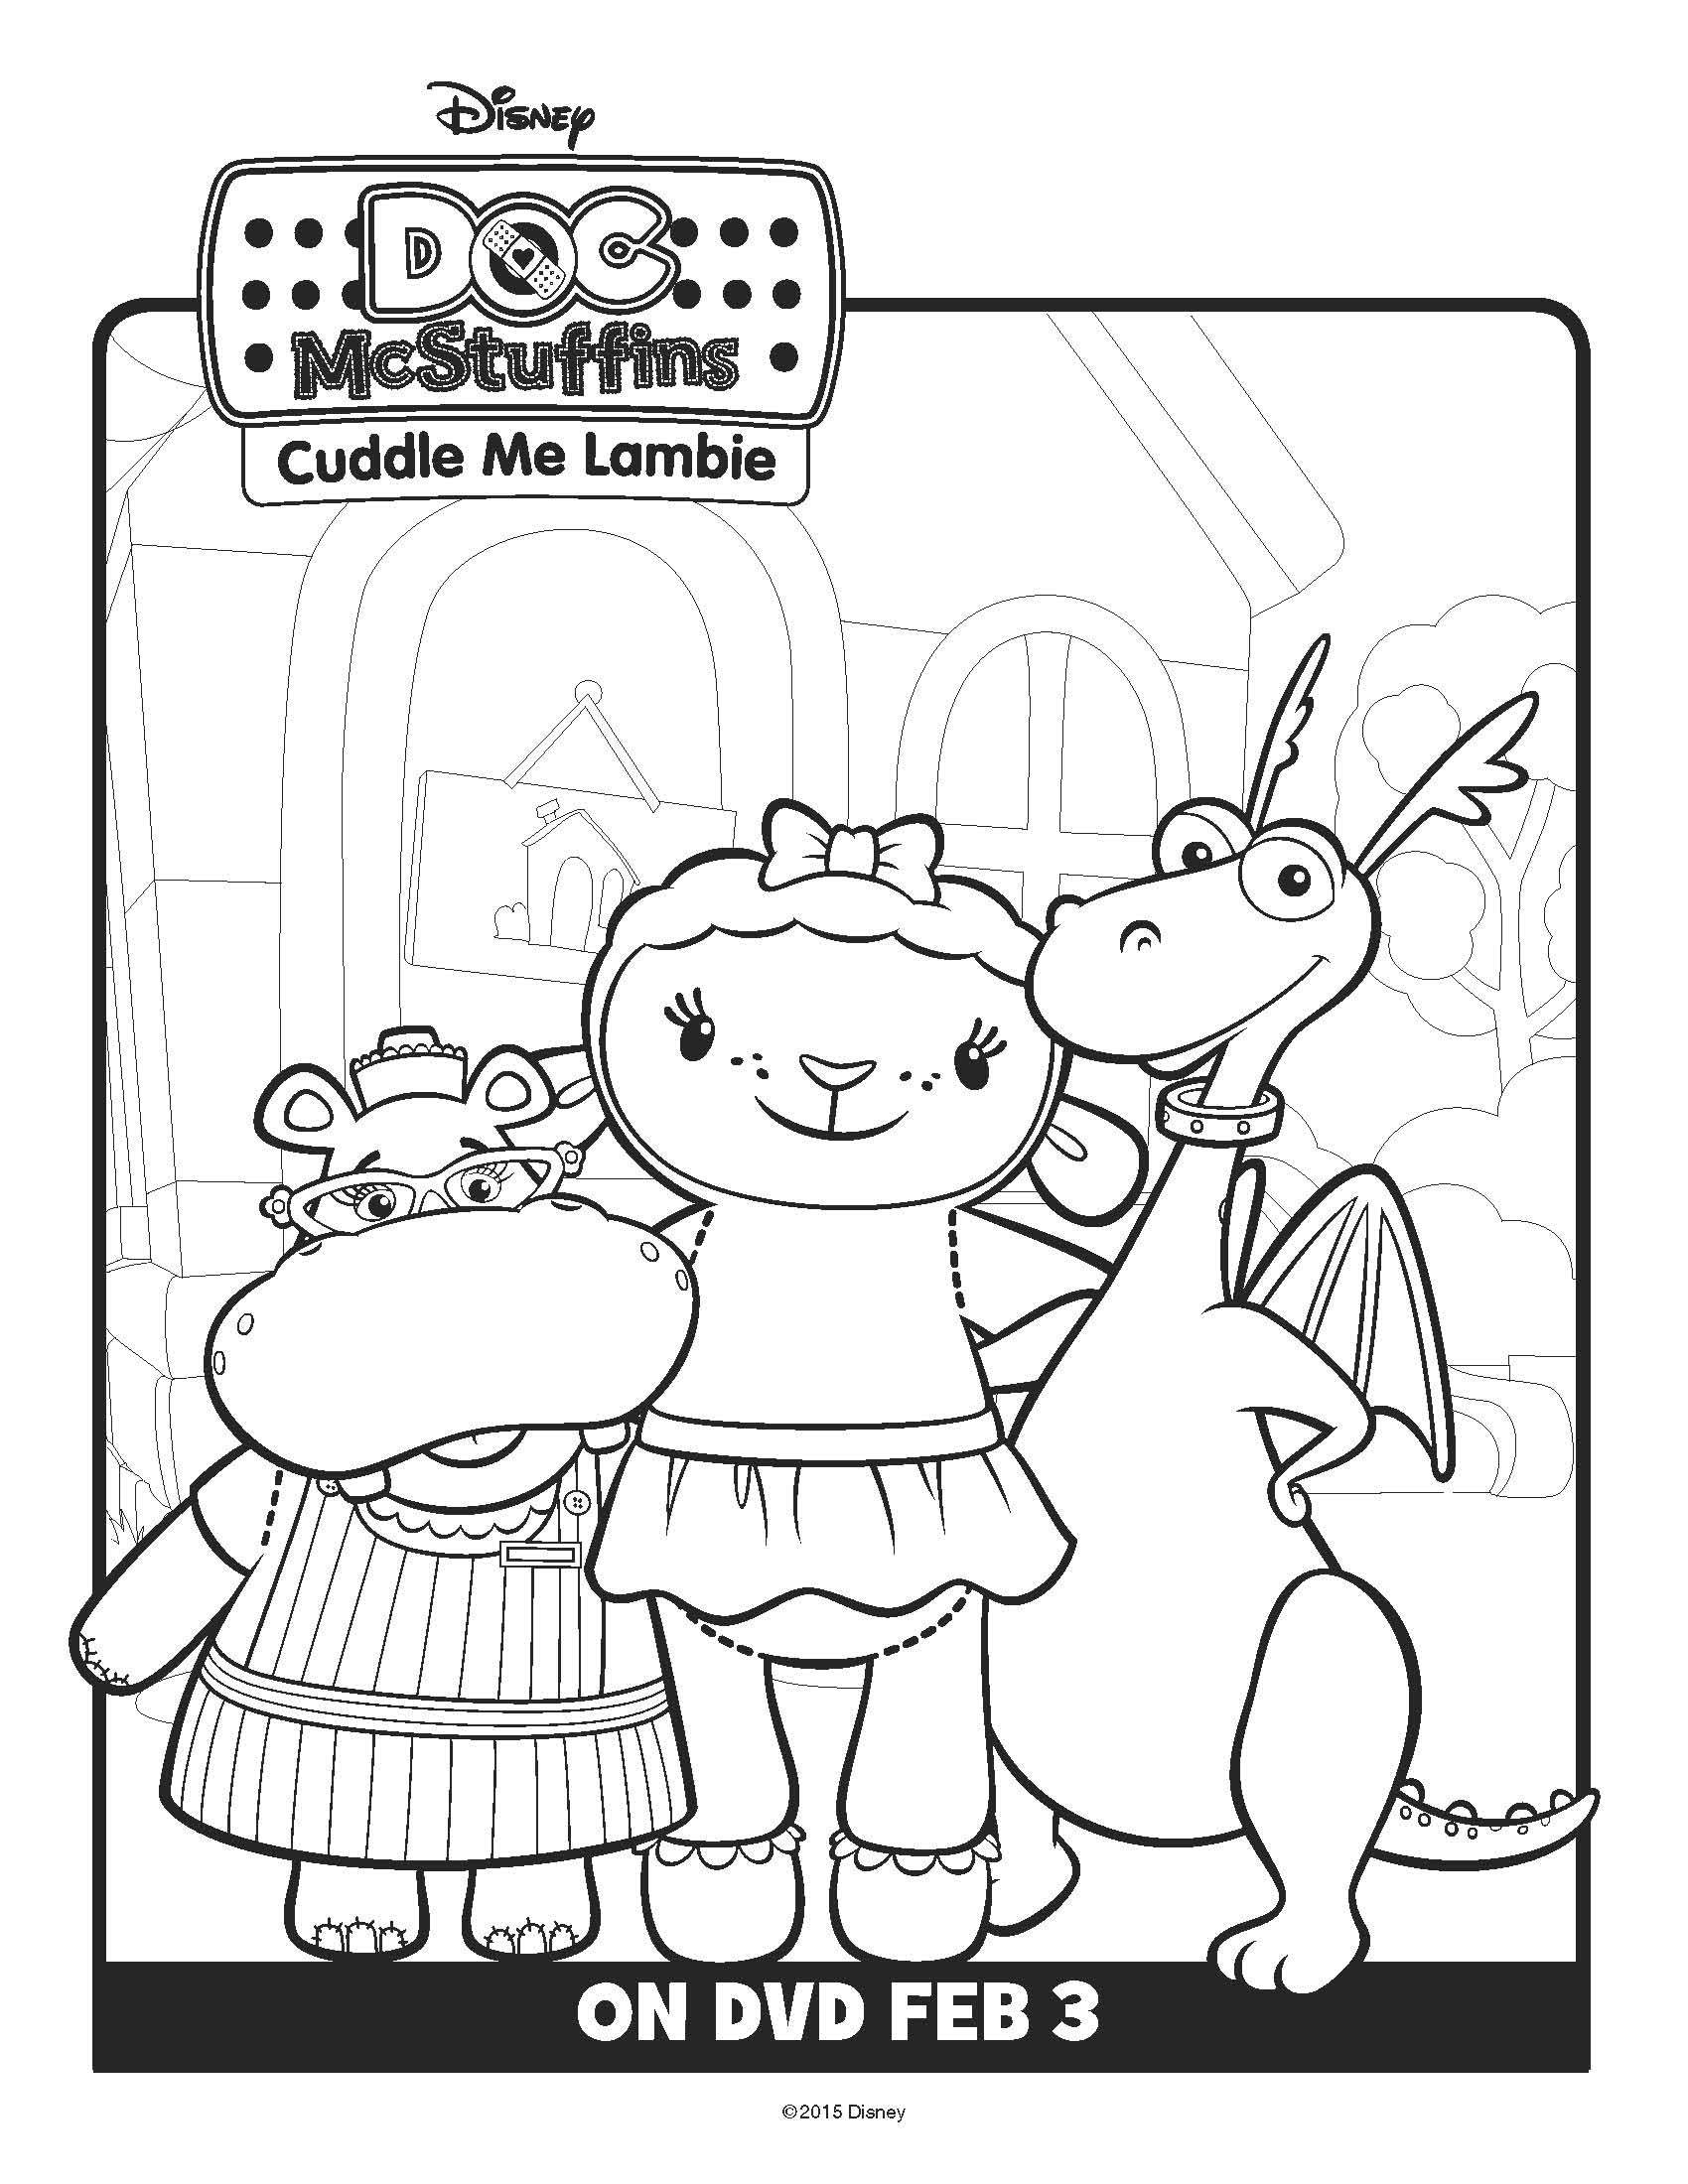 Vampirina Coloring Pages Coloring Pages Vampirina For Your Coloring Pages Vampirina Best Of